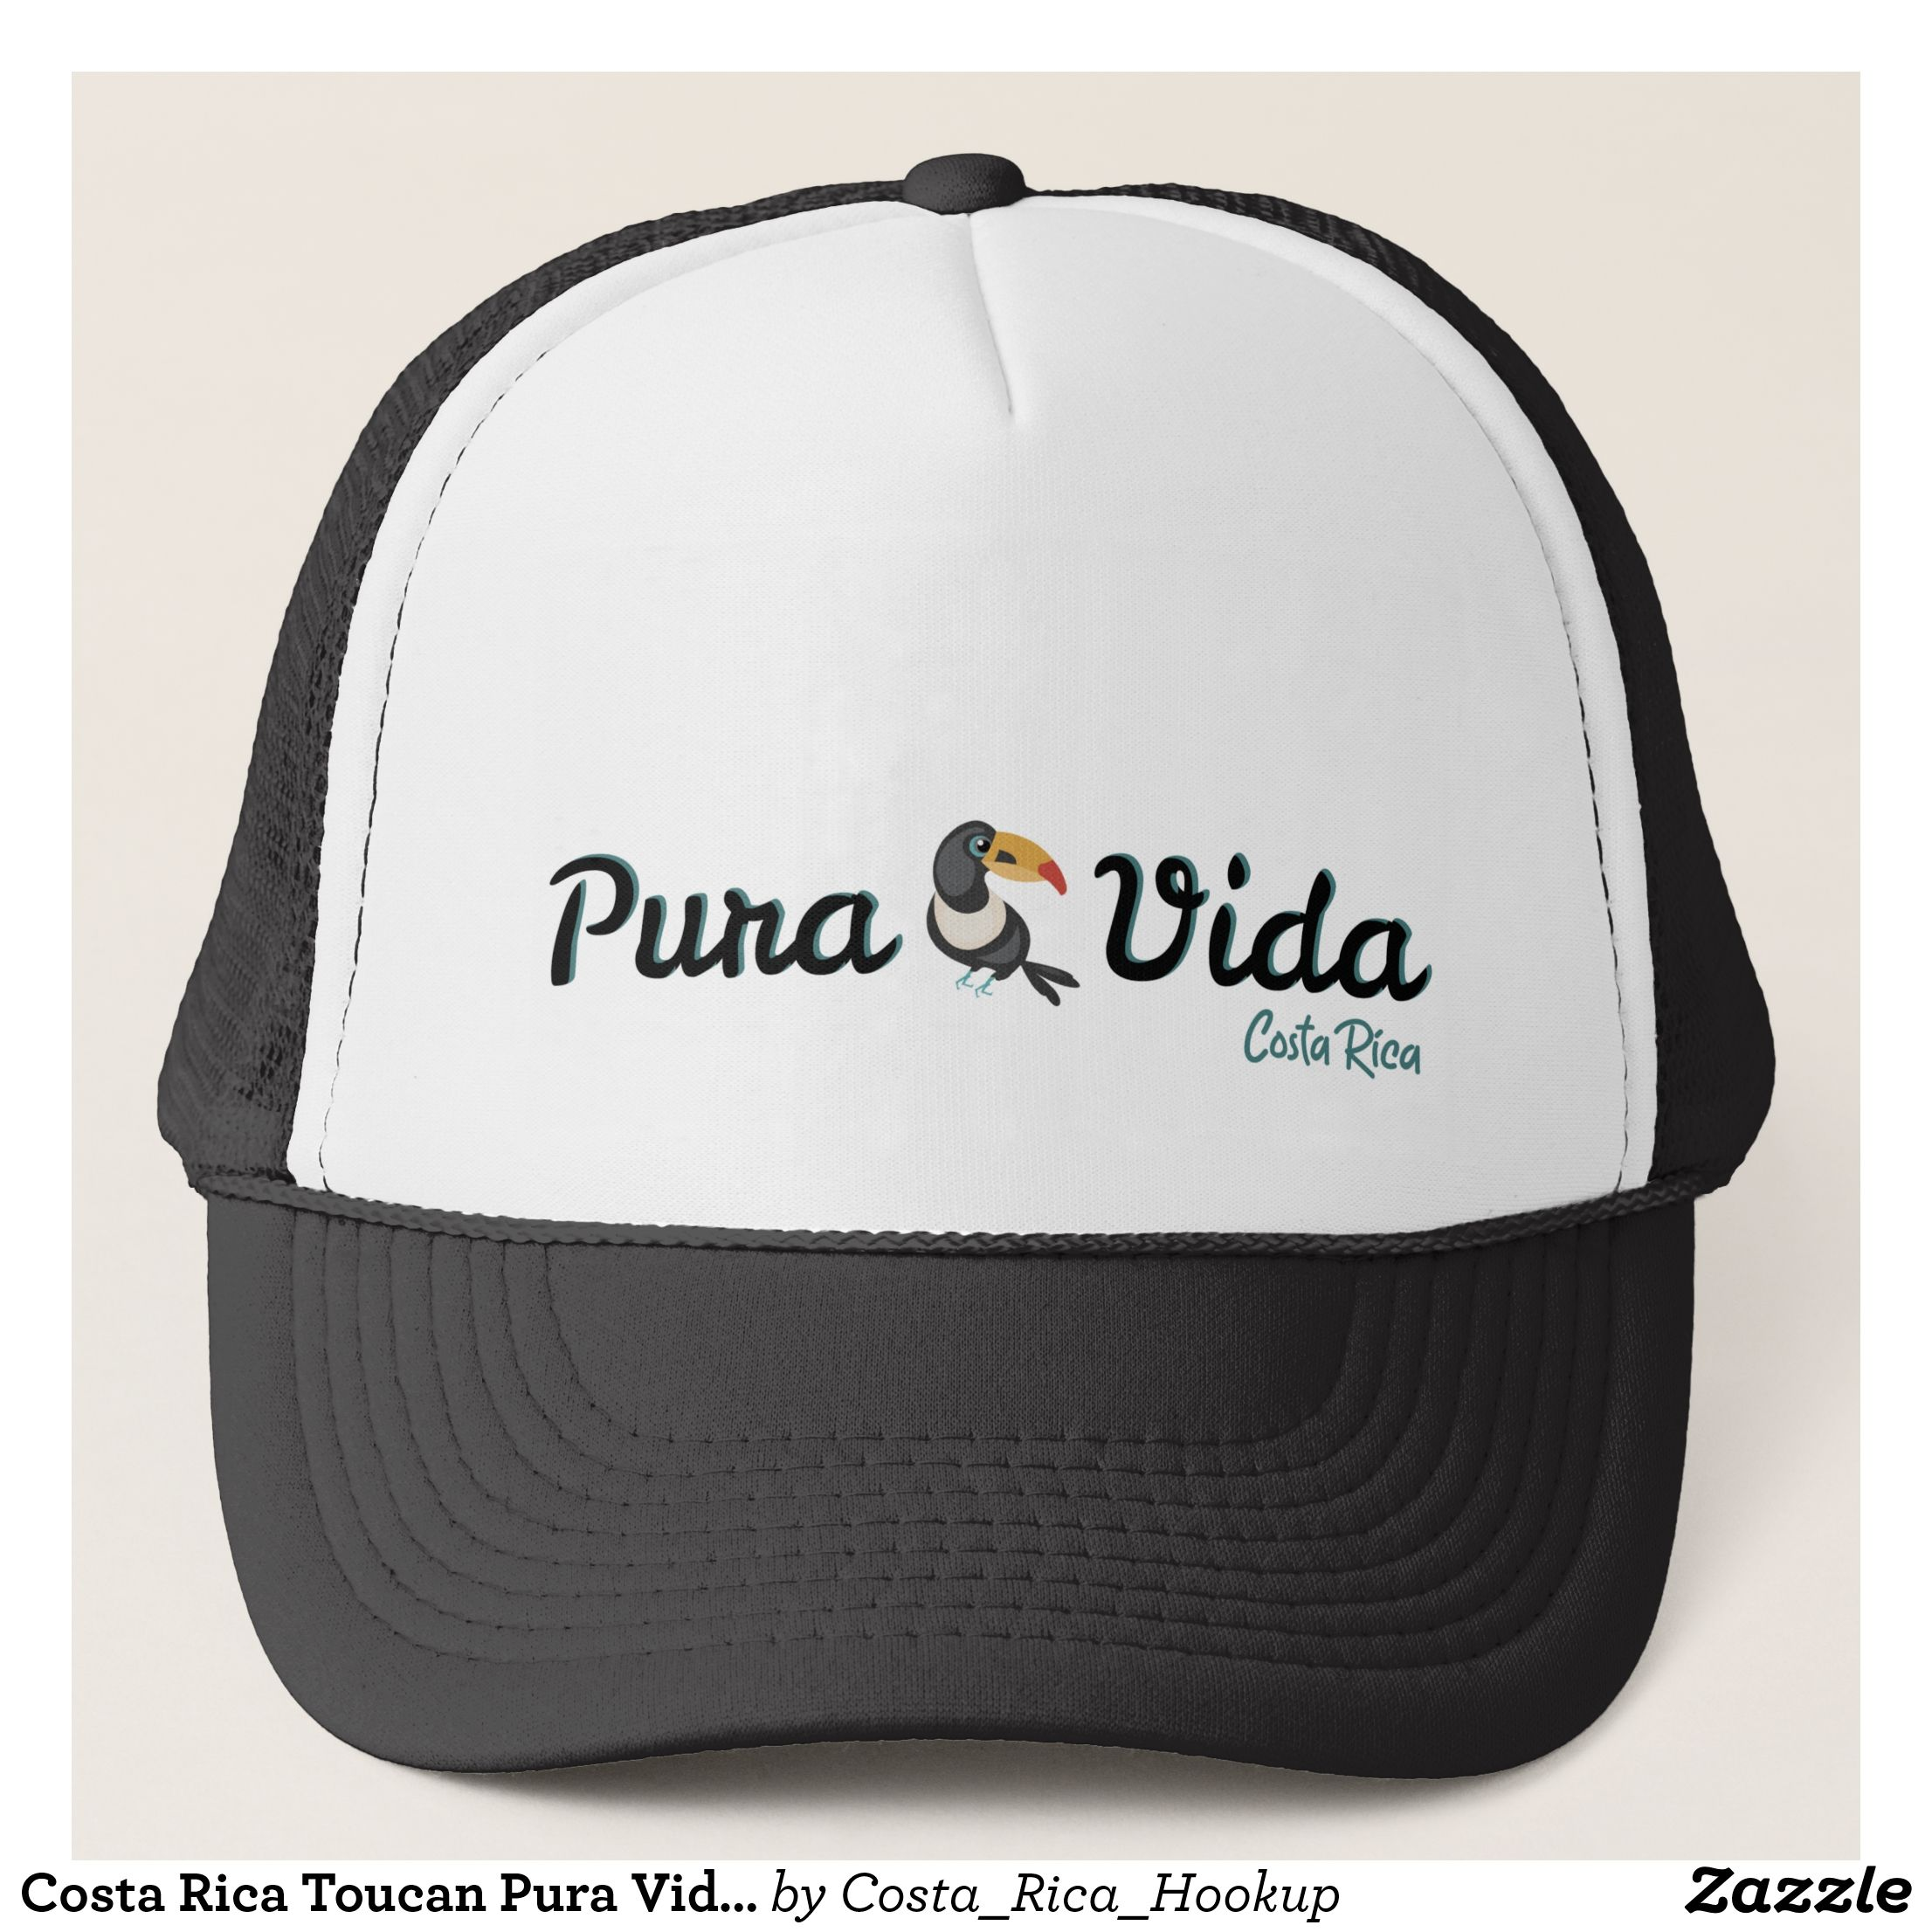 c29a95b2 Costa Rica Toucan Pura Vida Logo Souvenir Trucker Hat - Urban Hunter Fisher  Farmer Redneck Hats By Talented Fashion And Graphic Designers - #hats ...